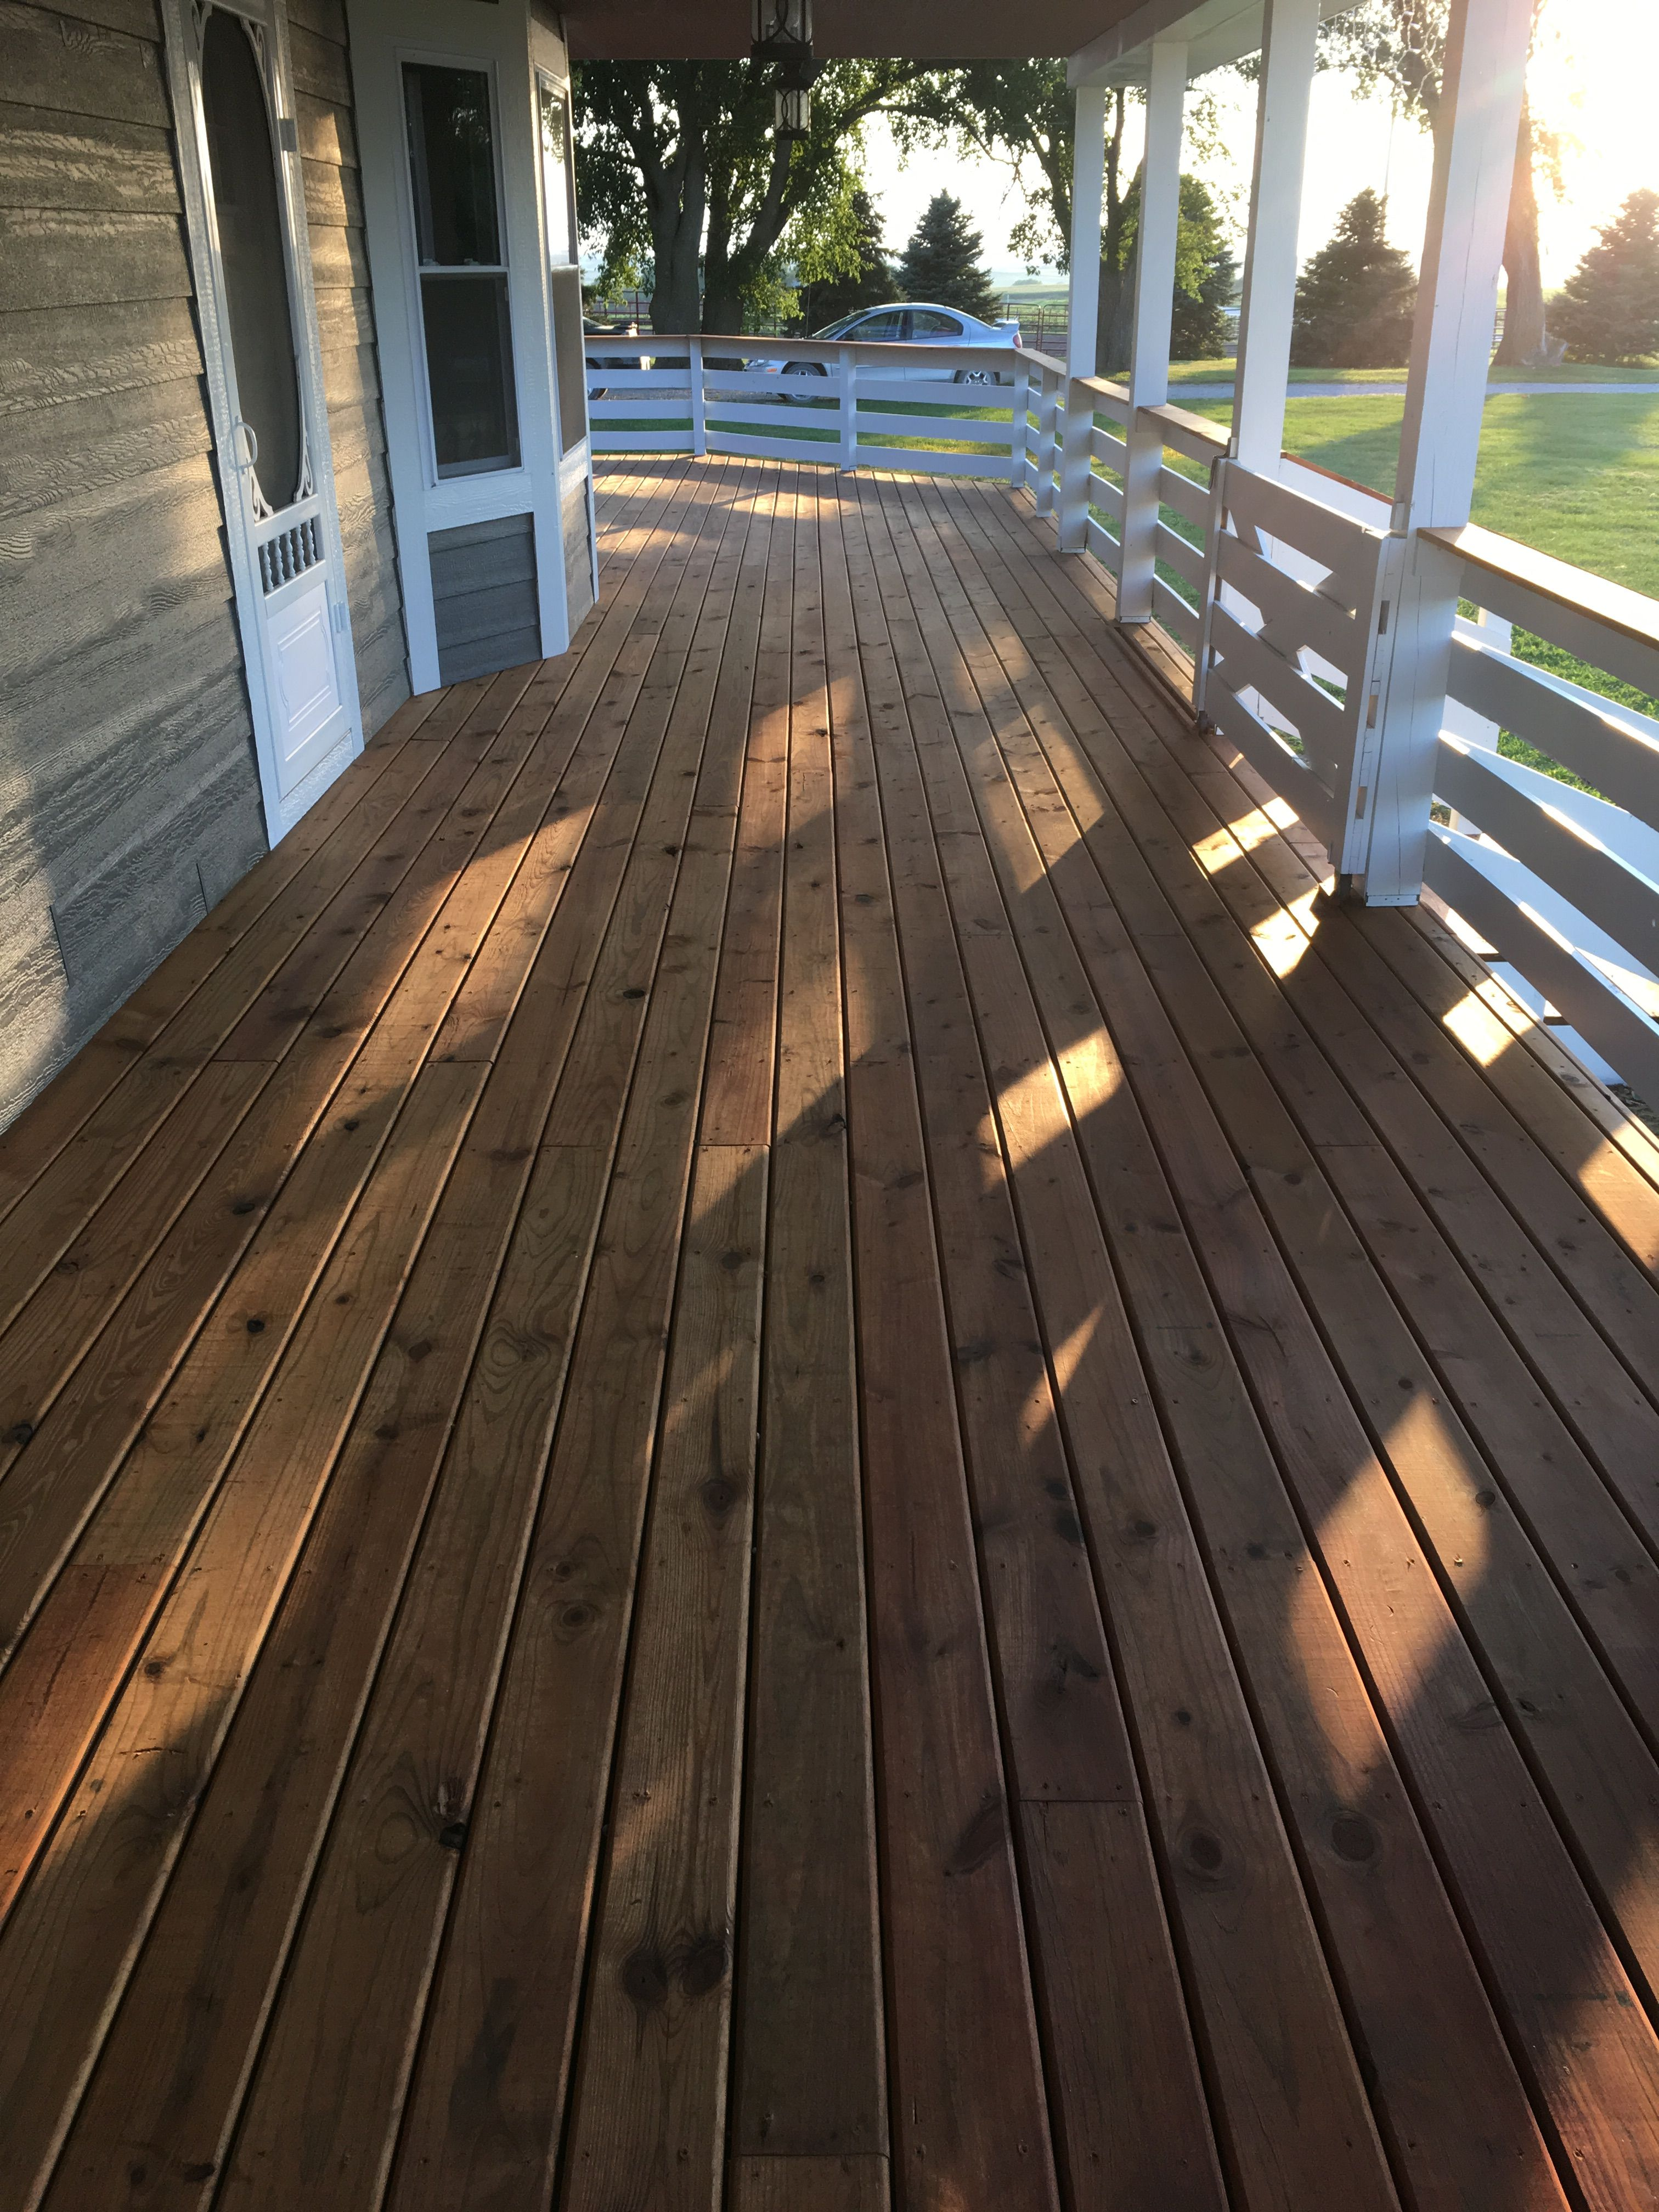 Floor Handrails Done In Sherwin Williams Superdeck Transparent Oil Stain Redwood Rails And Posts Done In Cabo Deck Paint Staining Deck Deck Stain Colors